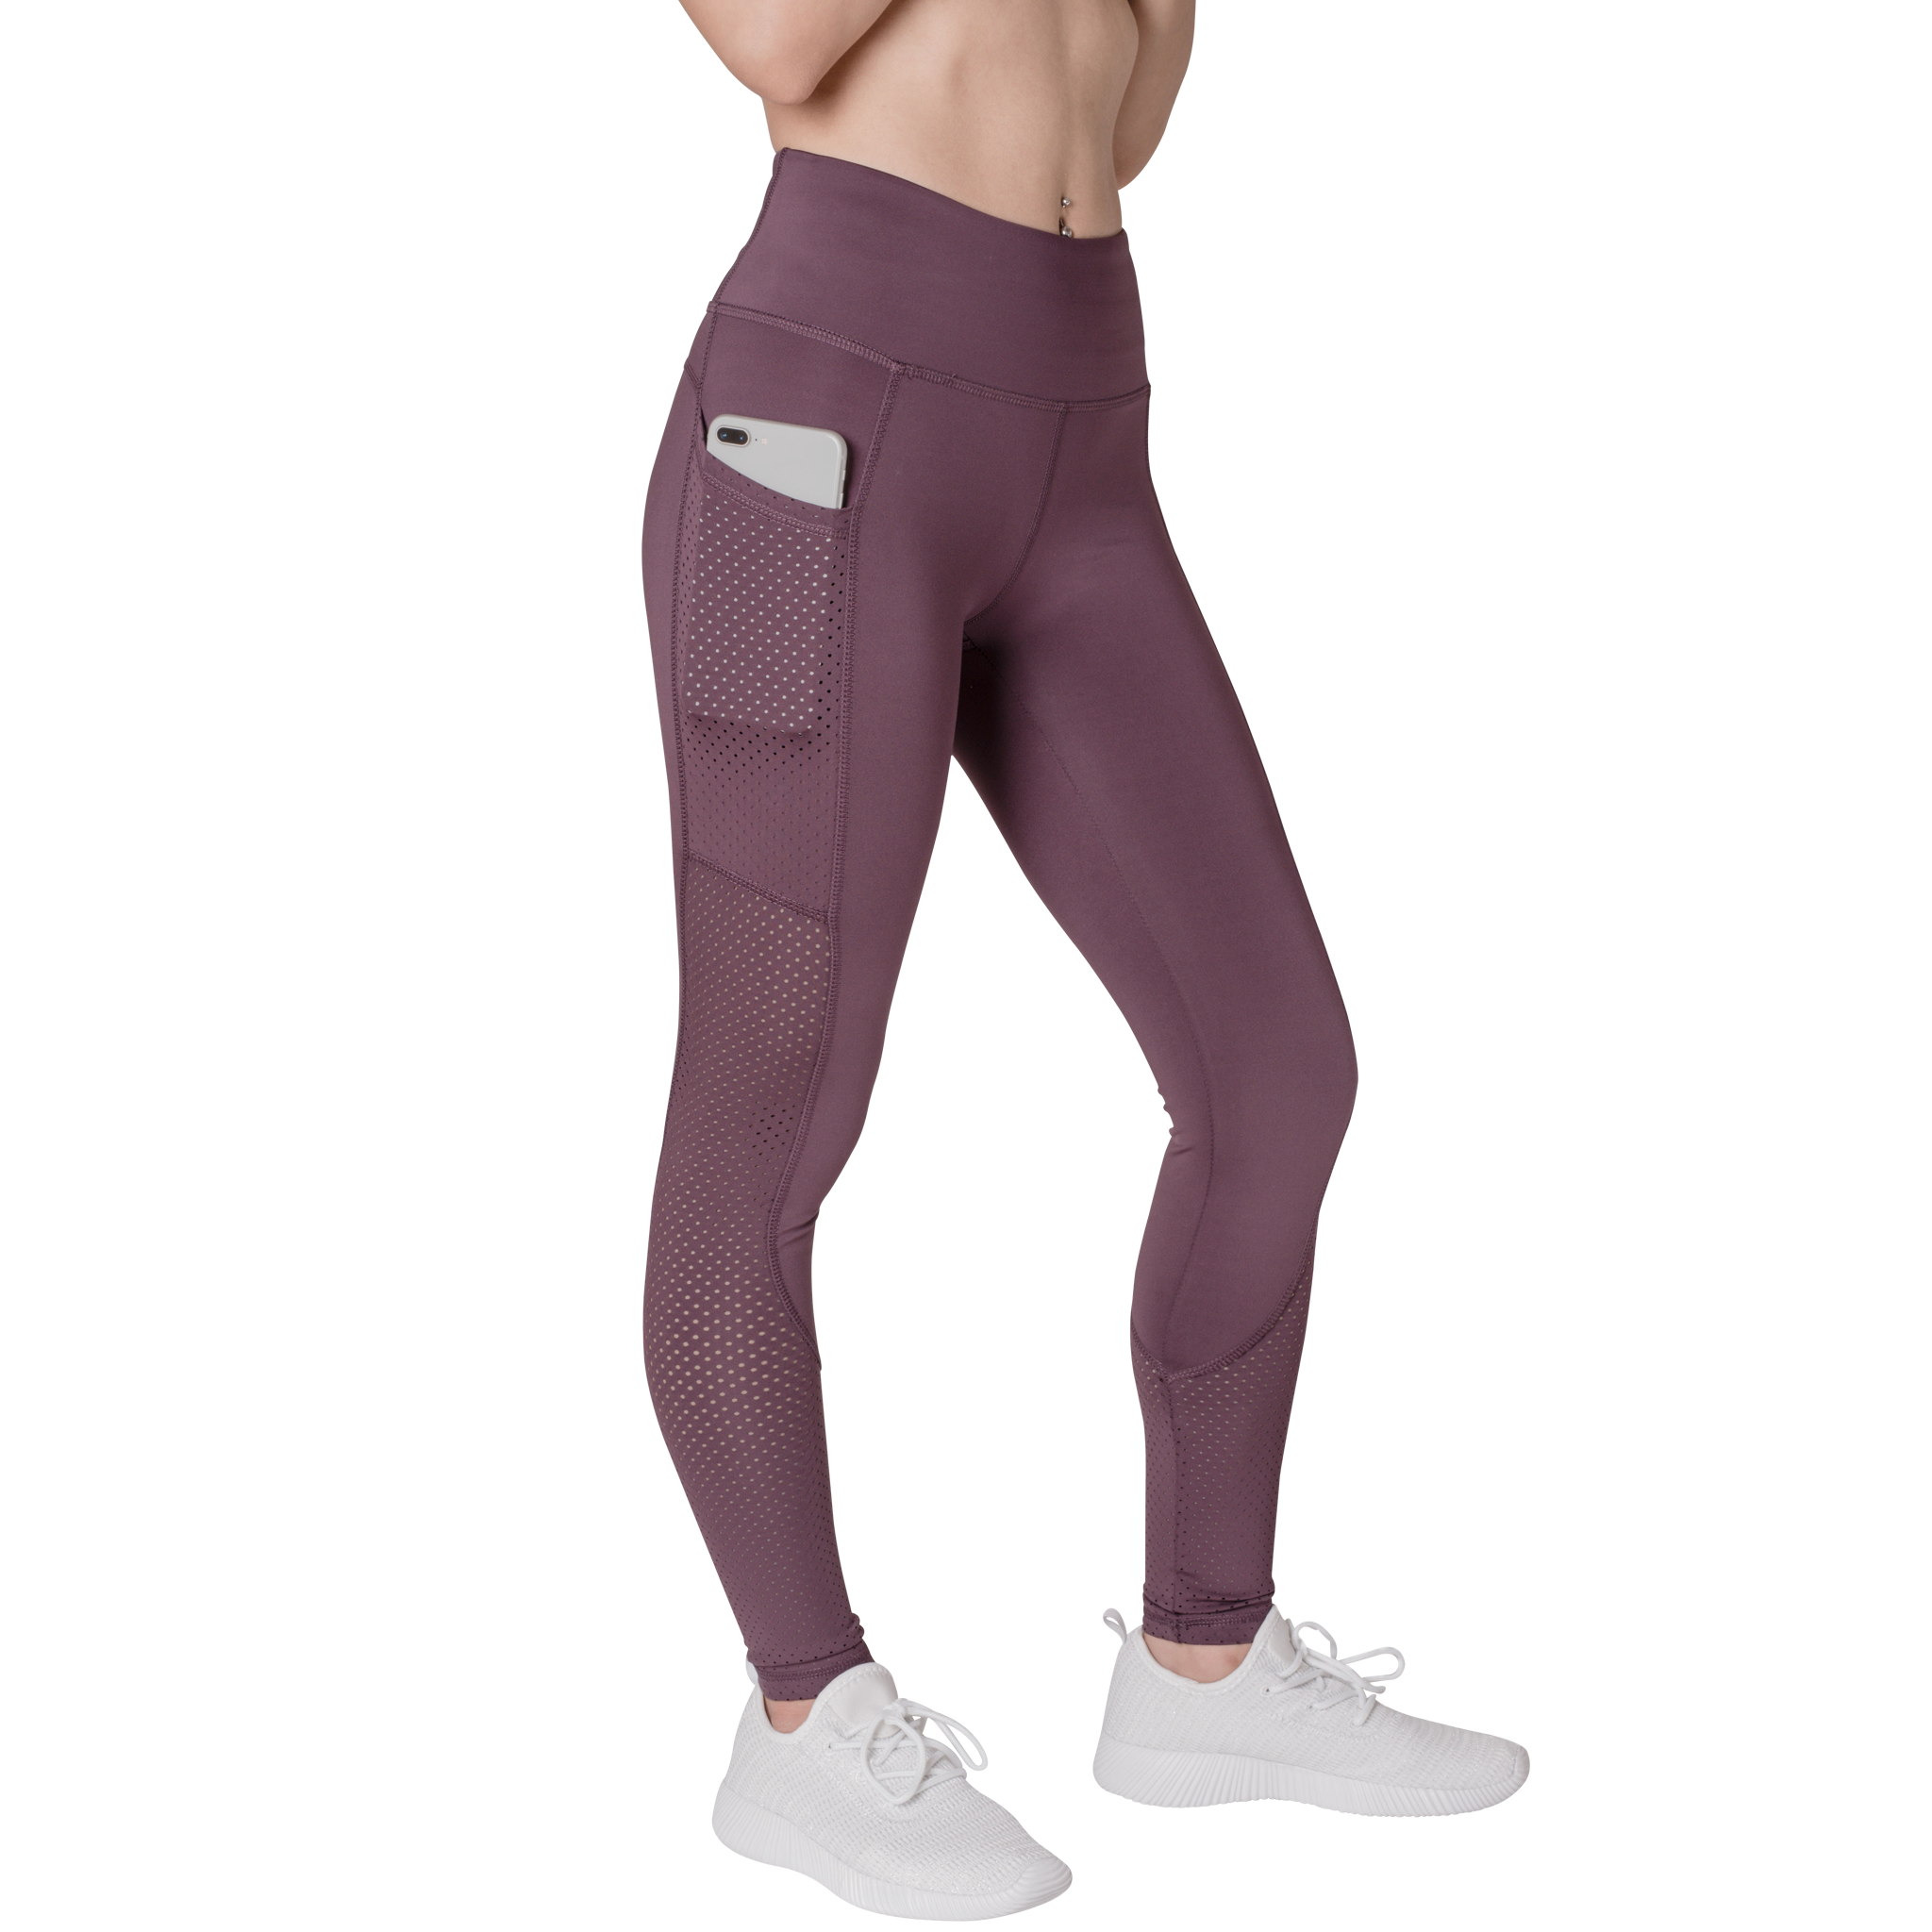 Side View Phone Pocket Classic Leisurewear Mauve with Elasticized waistband Side pockets right, left and back